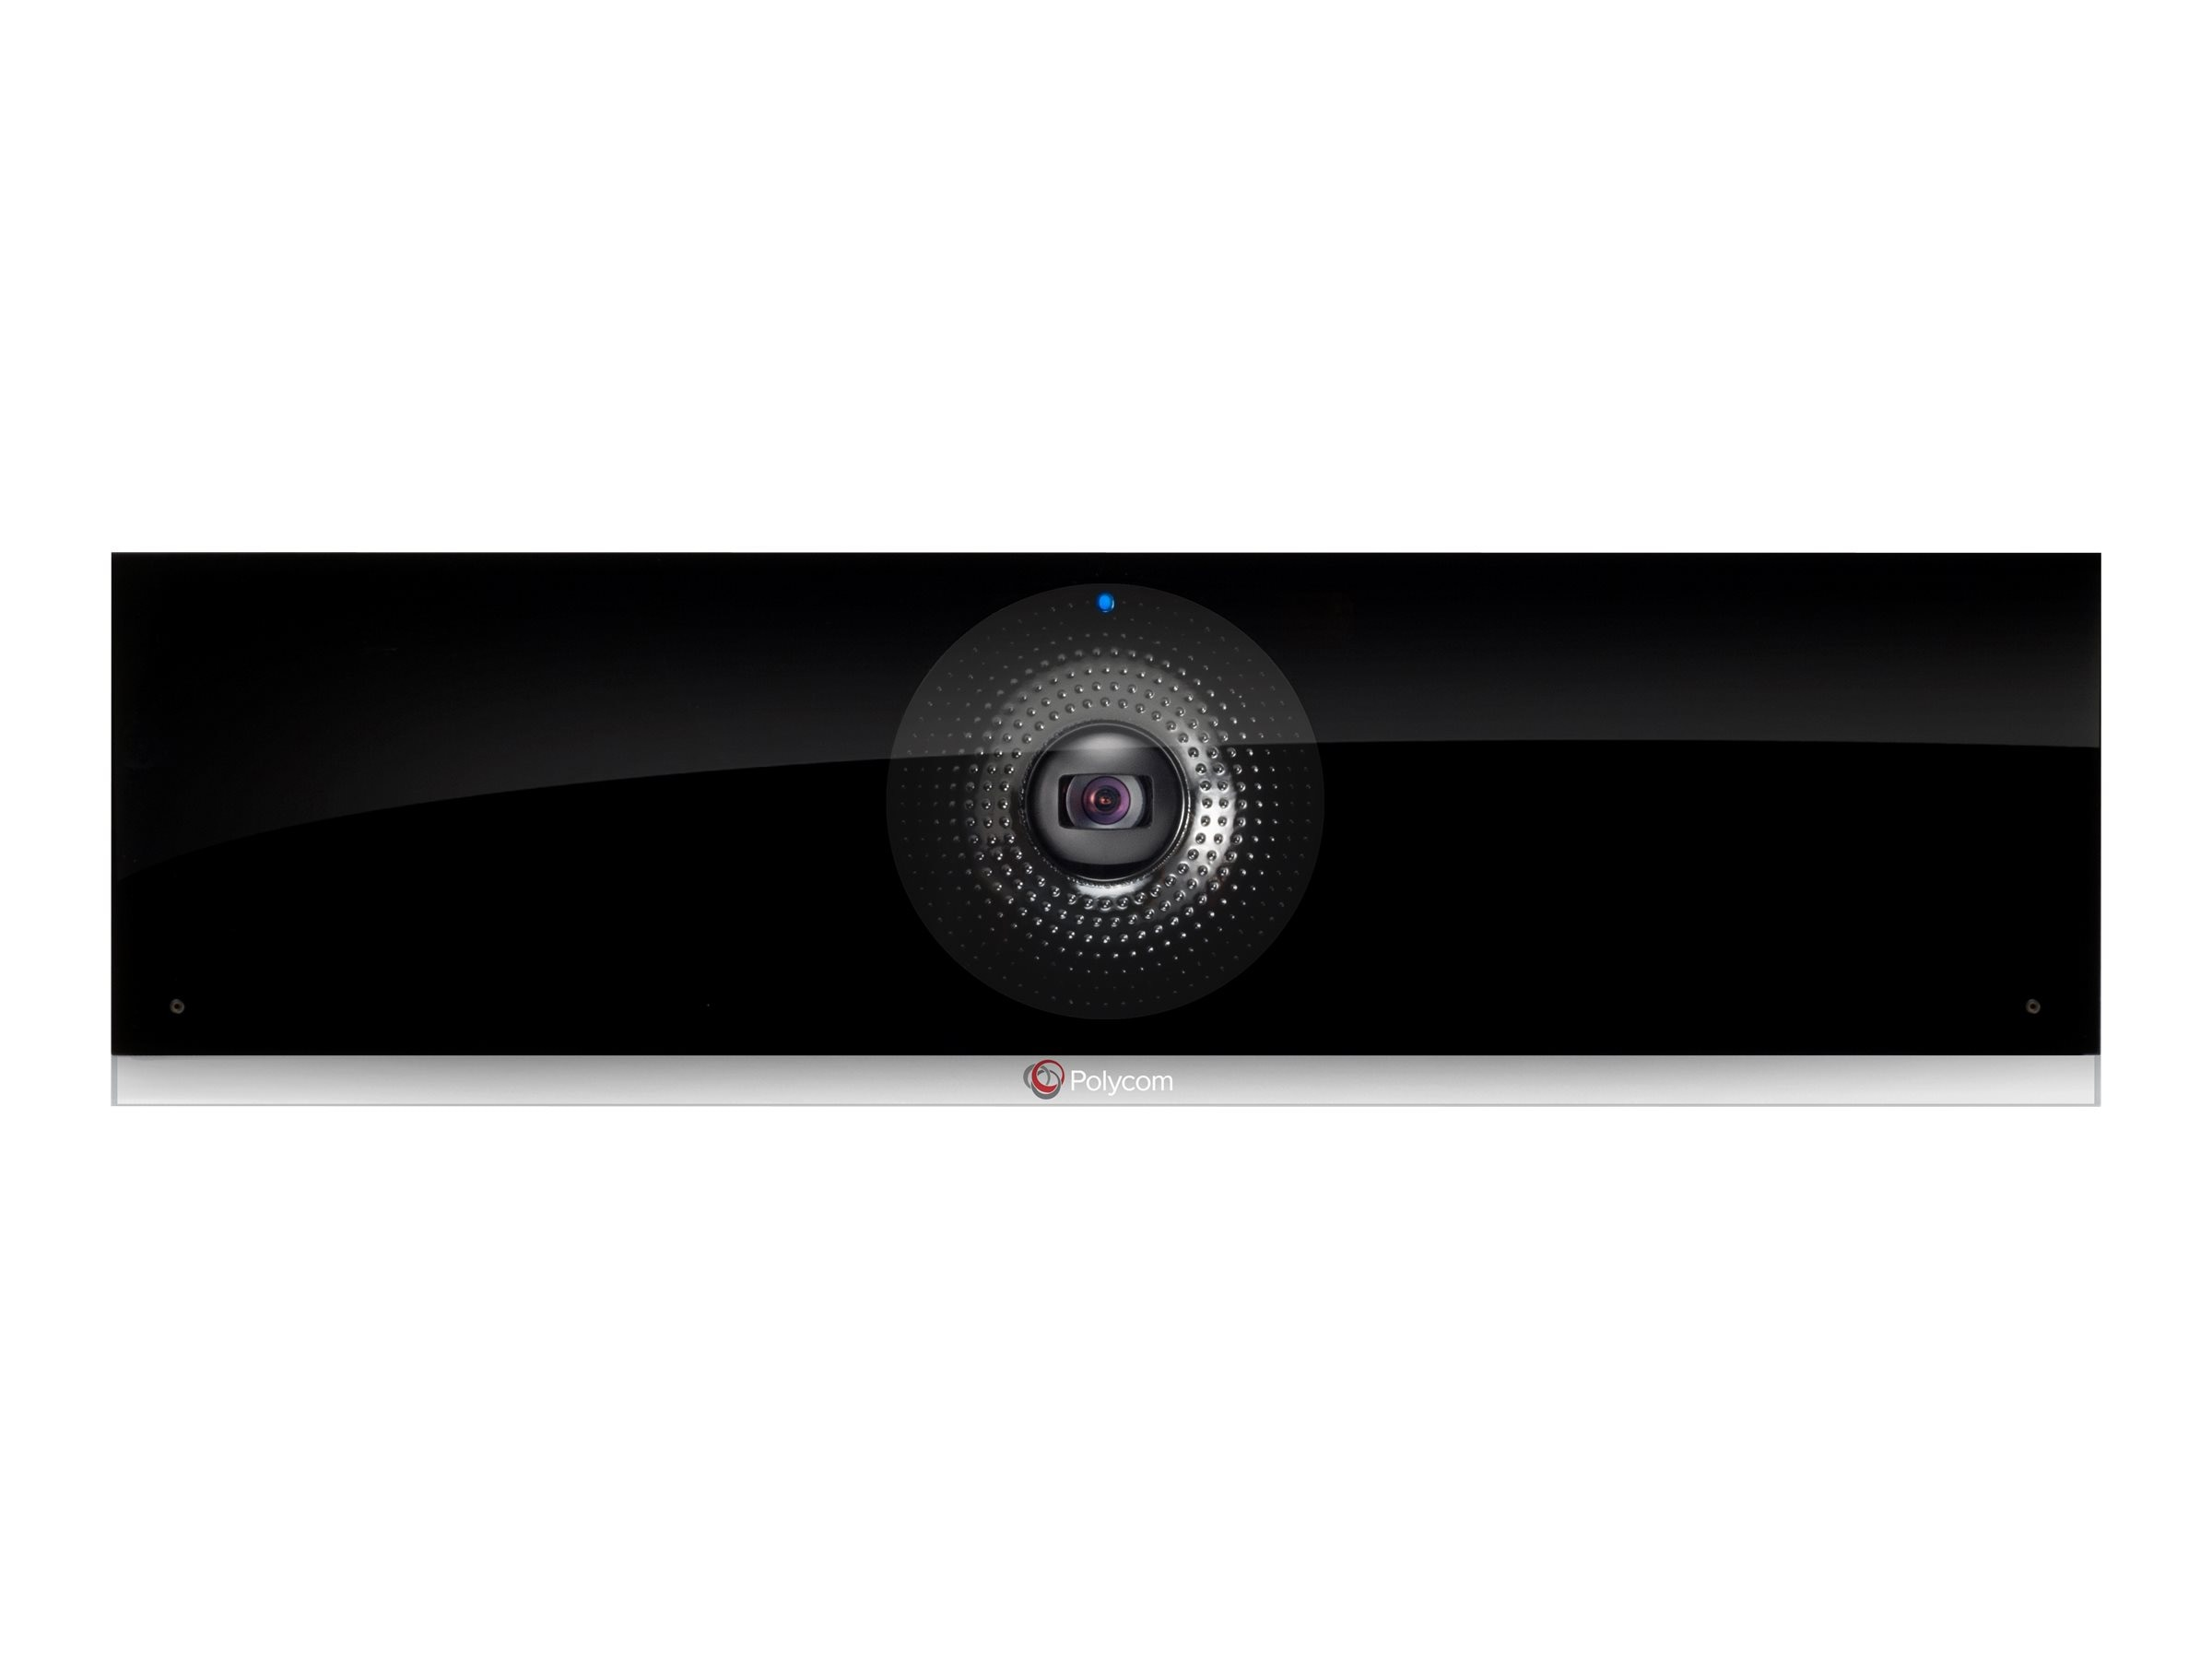 Polycom RealPresence Debut - 1080p, 7230-69725-001, 31655544, Audio/Video Conference Hardware